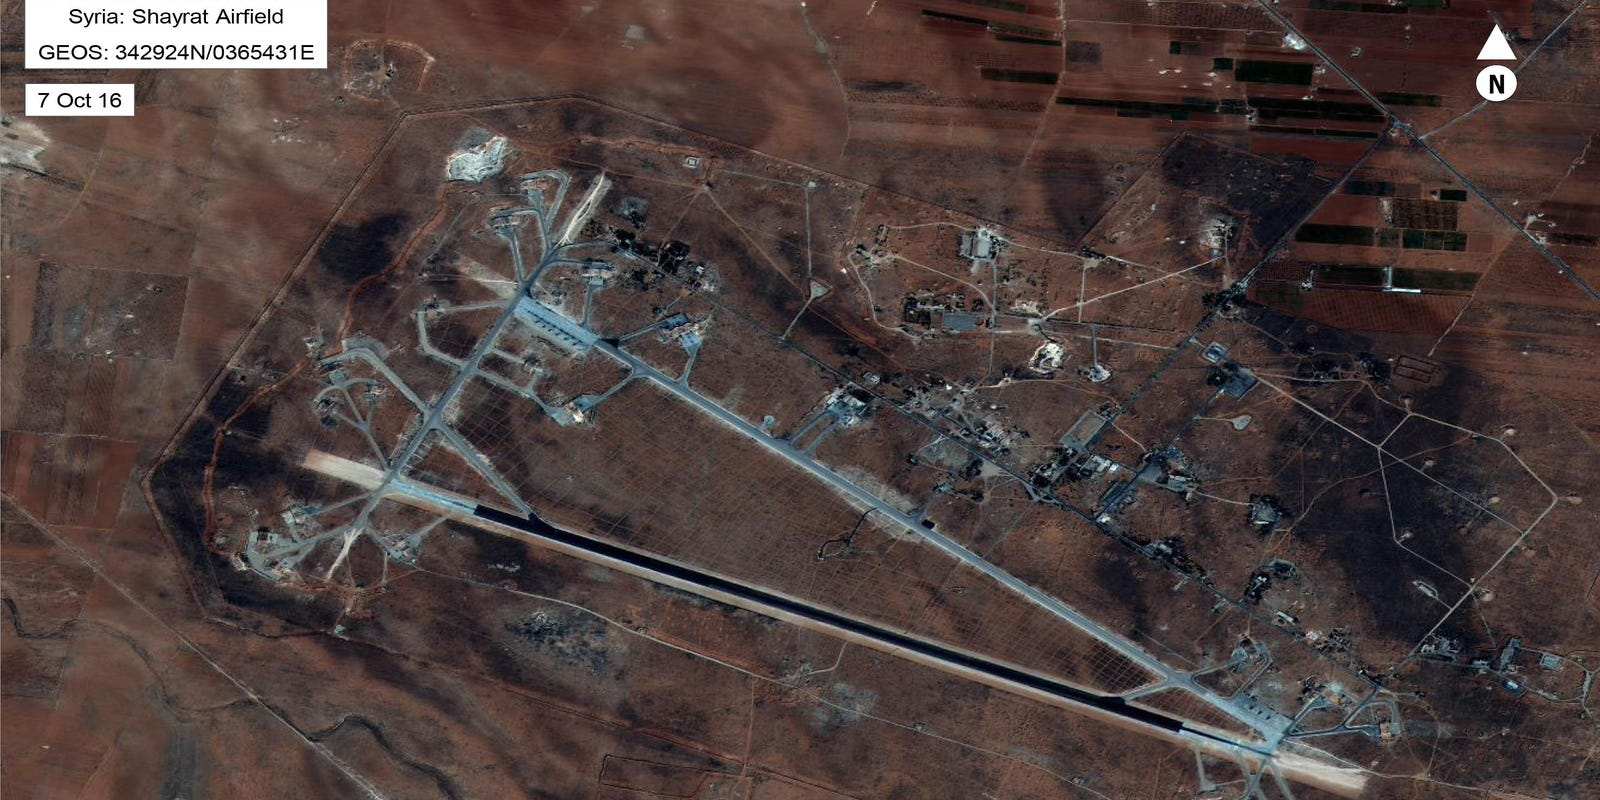 Pentagon Says Russia Could Have Stopped Syrian Chemical Weapons Attack